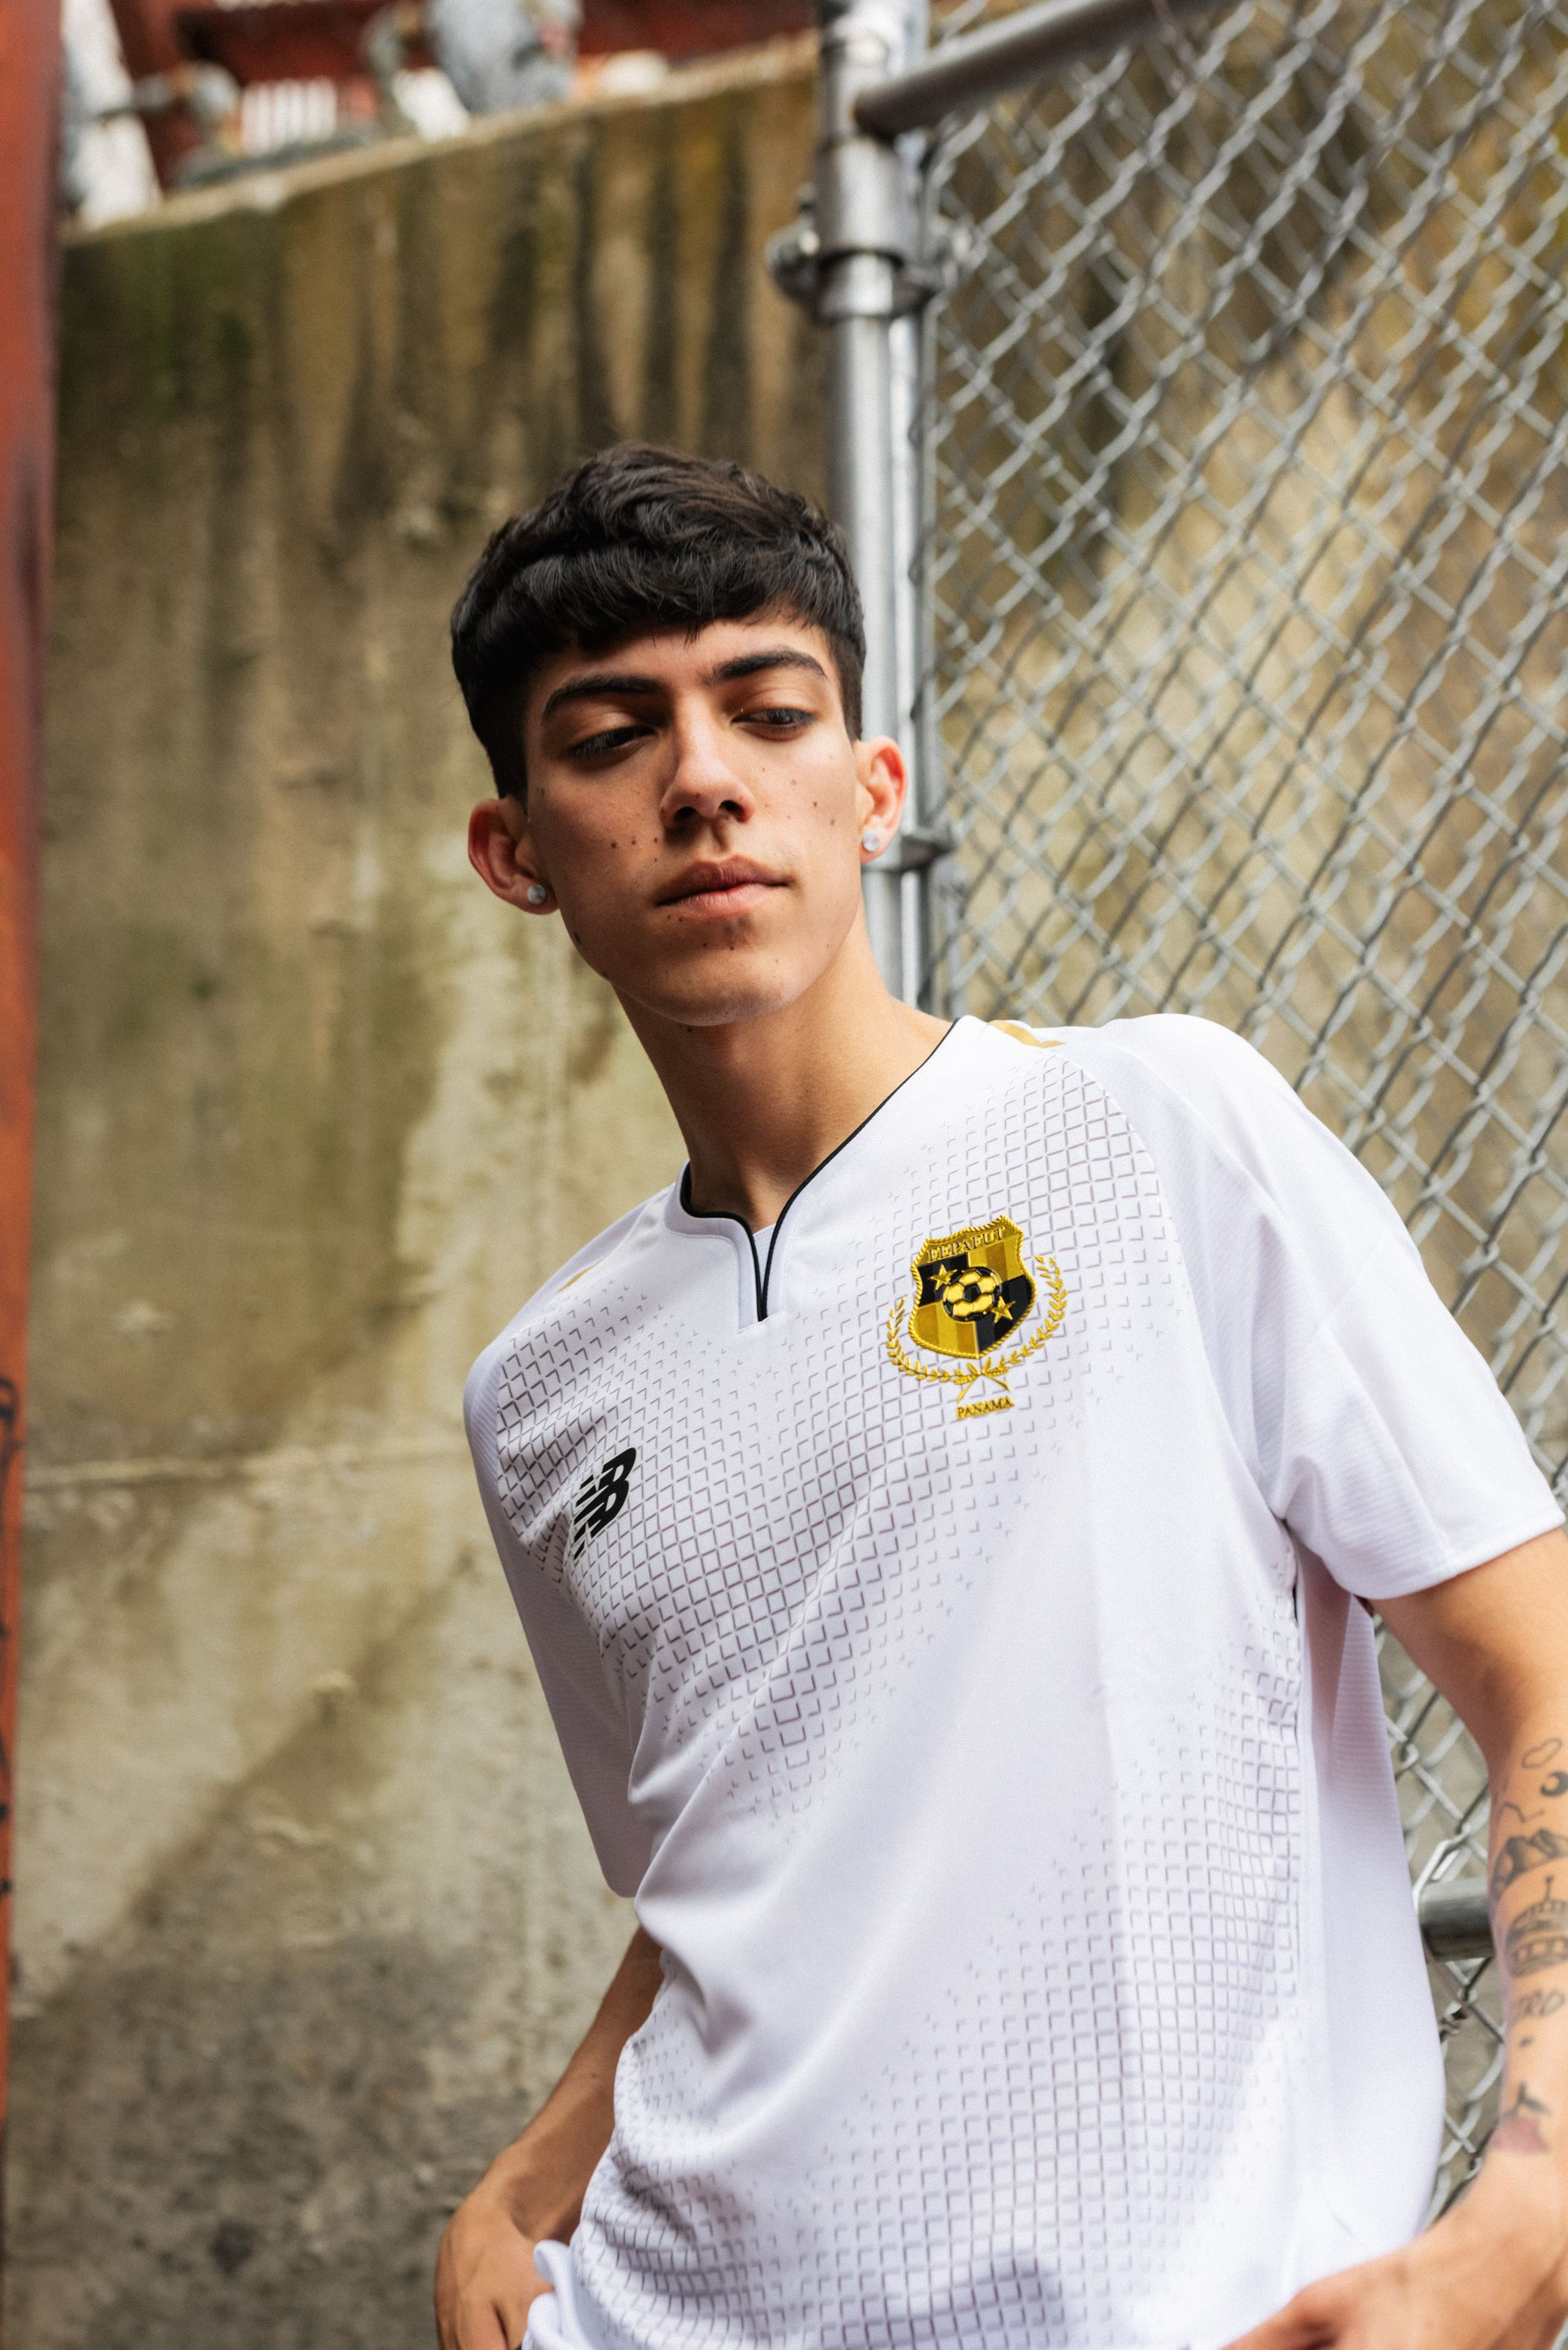 Panama 2019 Gold Cup Jersey by New Balance | 2019/20 National Team